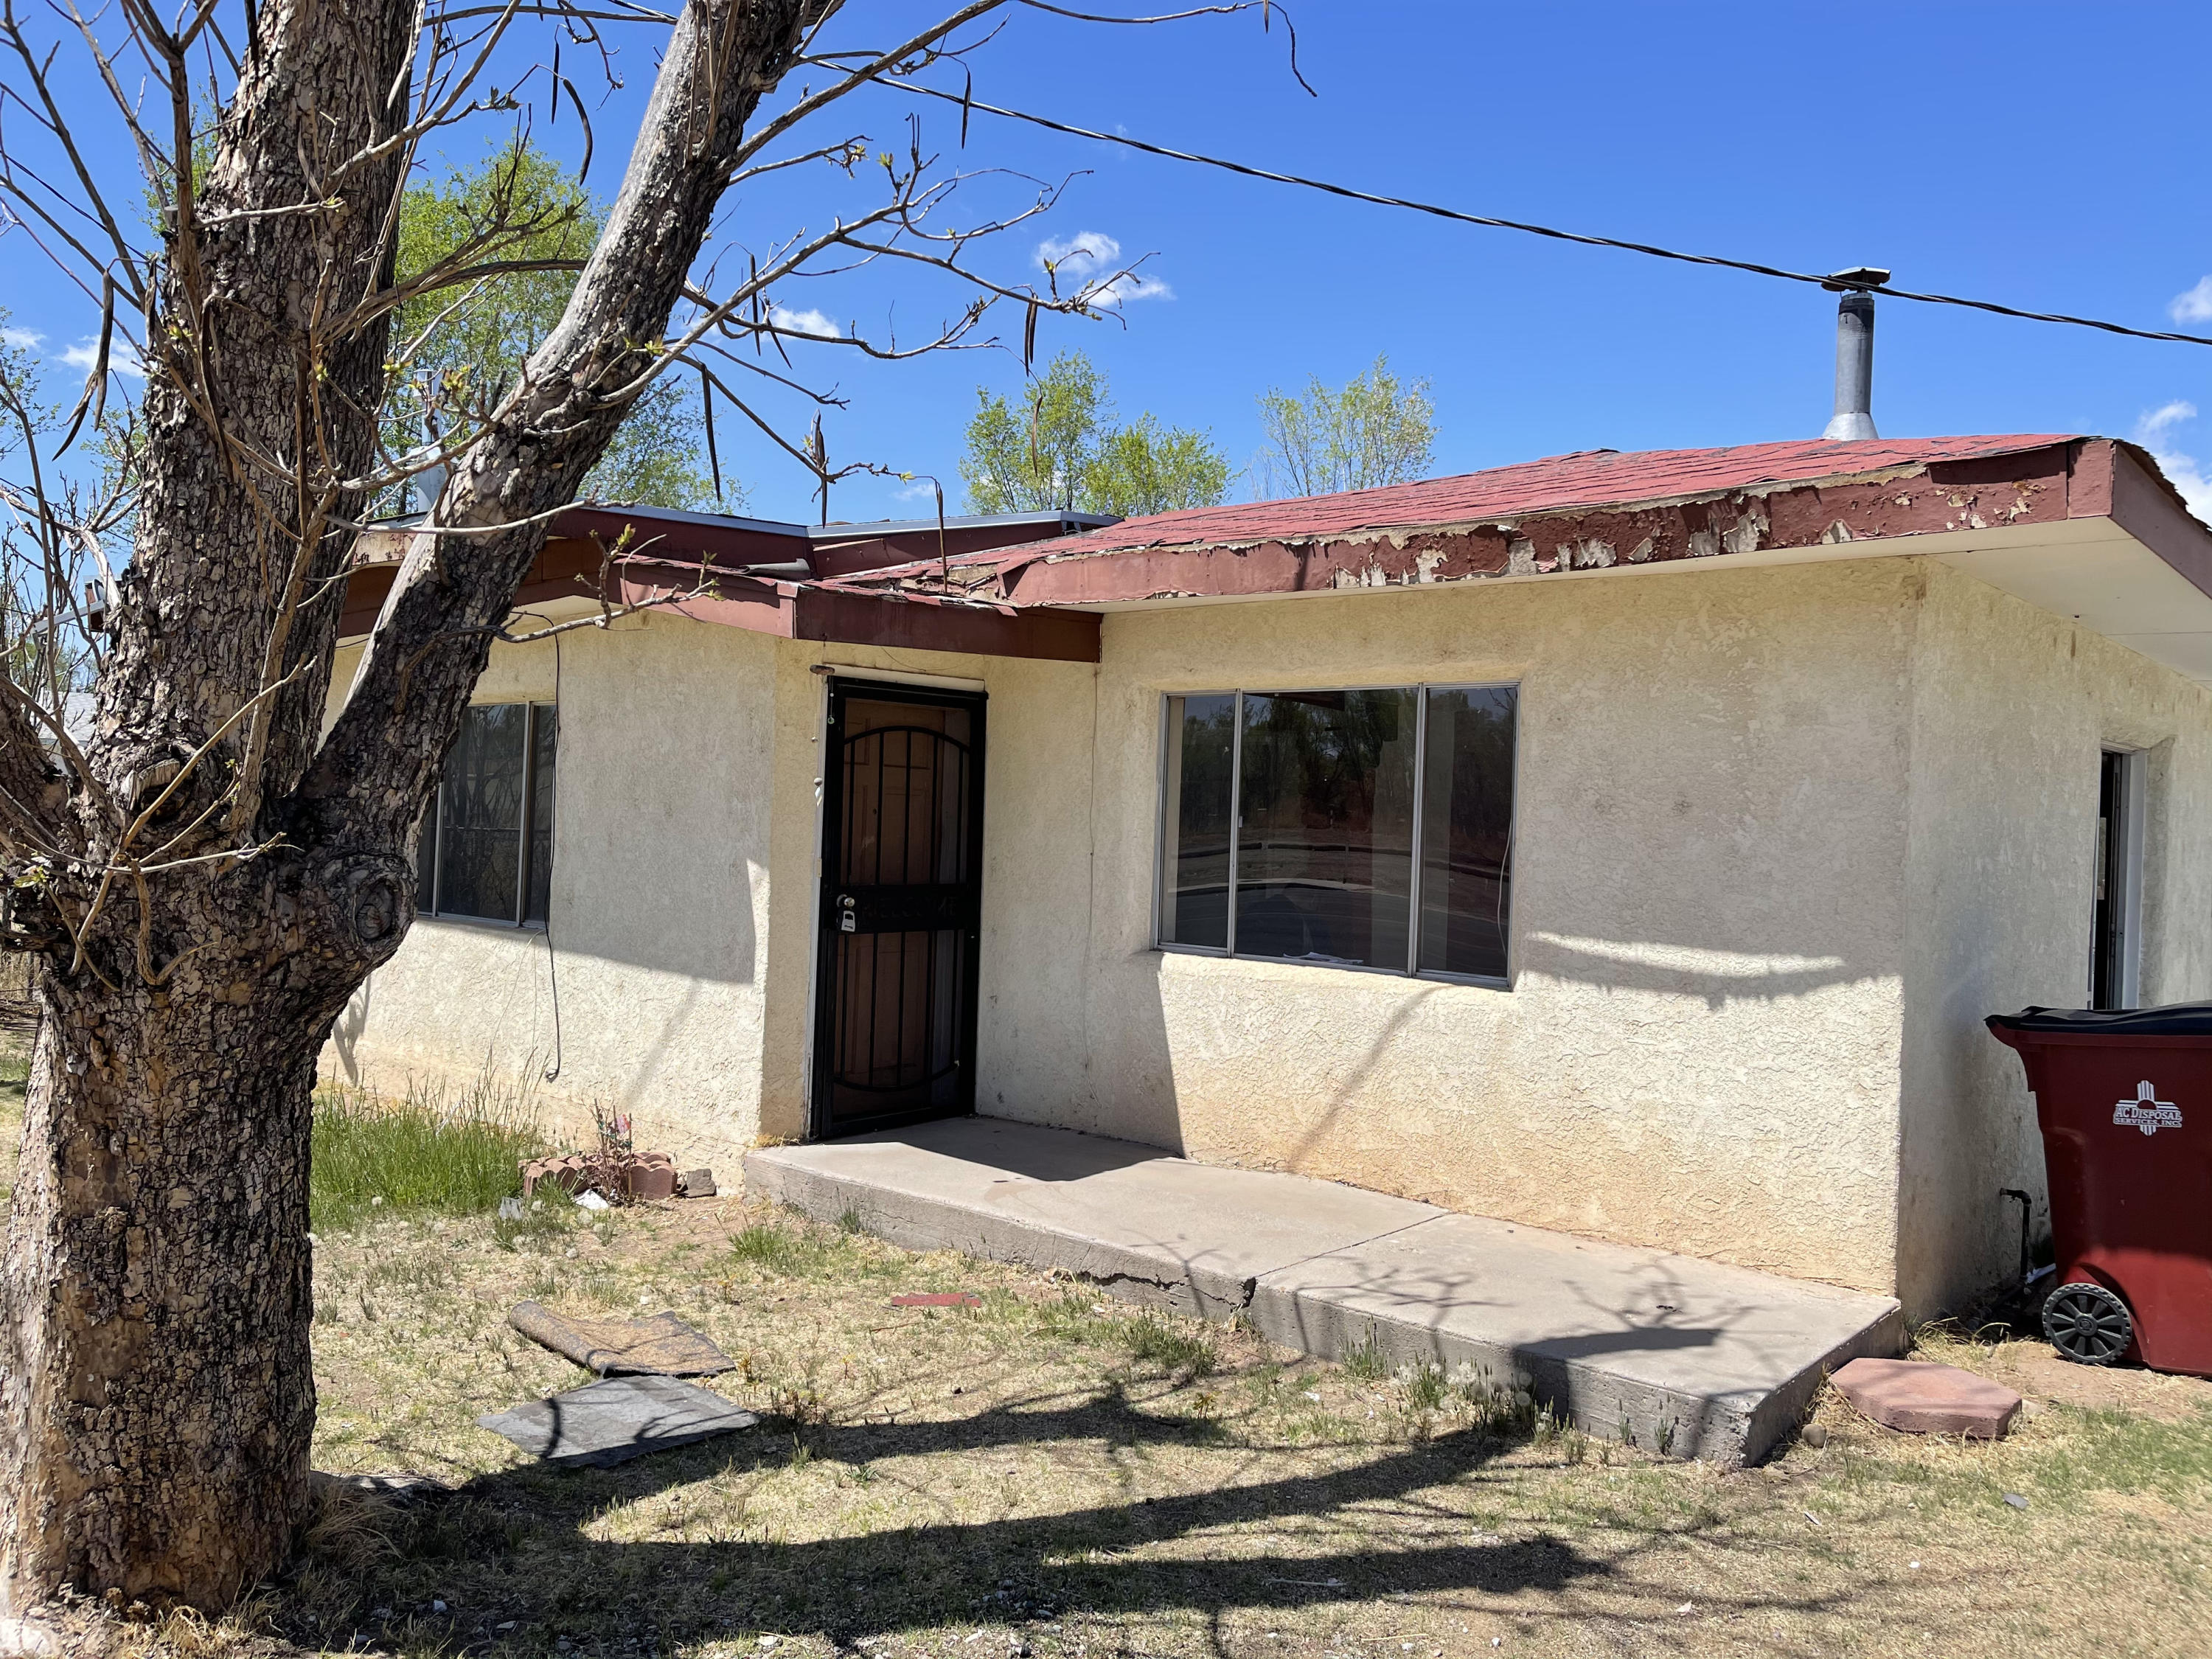 Calling all project seekers! This property has a lot of potential and can be your next awesome home! 2 Bed possible 3, Detached 2 Car Garage with Extra Workroom! Property is being sold AS-IS condition.